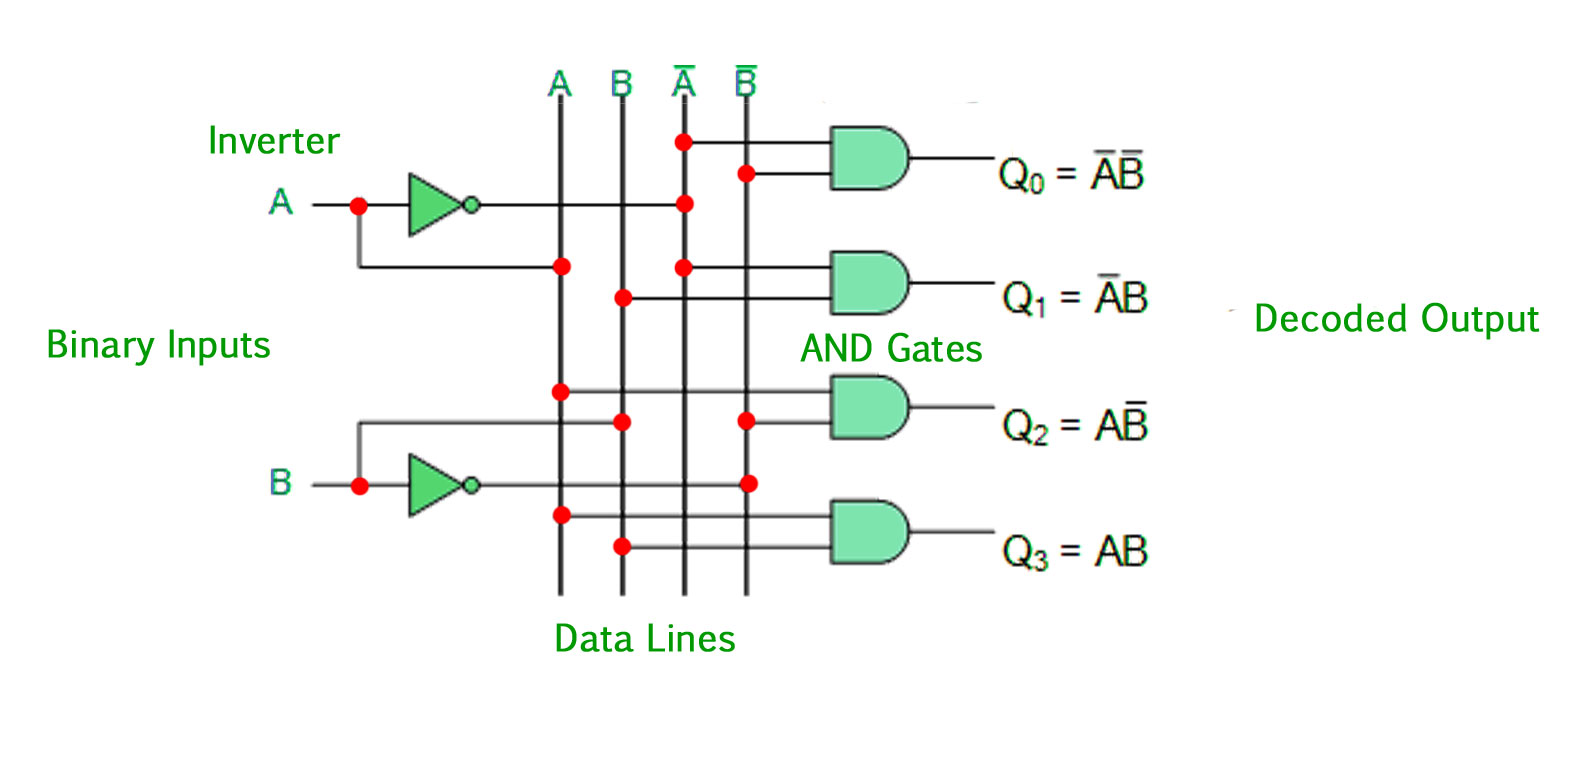 hight resolution of the 2 to 4 line binary decoder depicted above consists of an array of four and gates the 2 binary inputs labelled a and b are decoded into one of 4 outputs